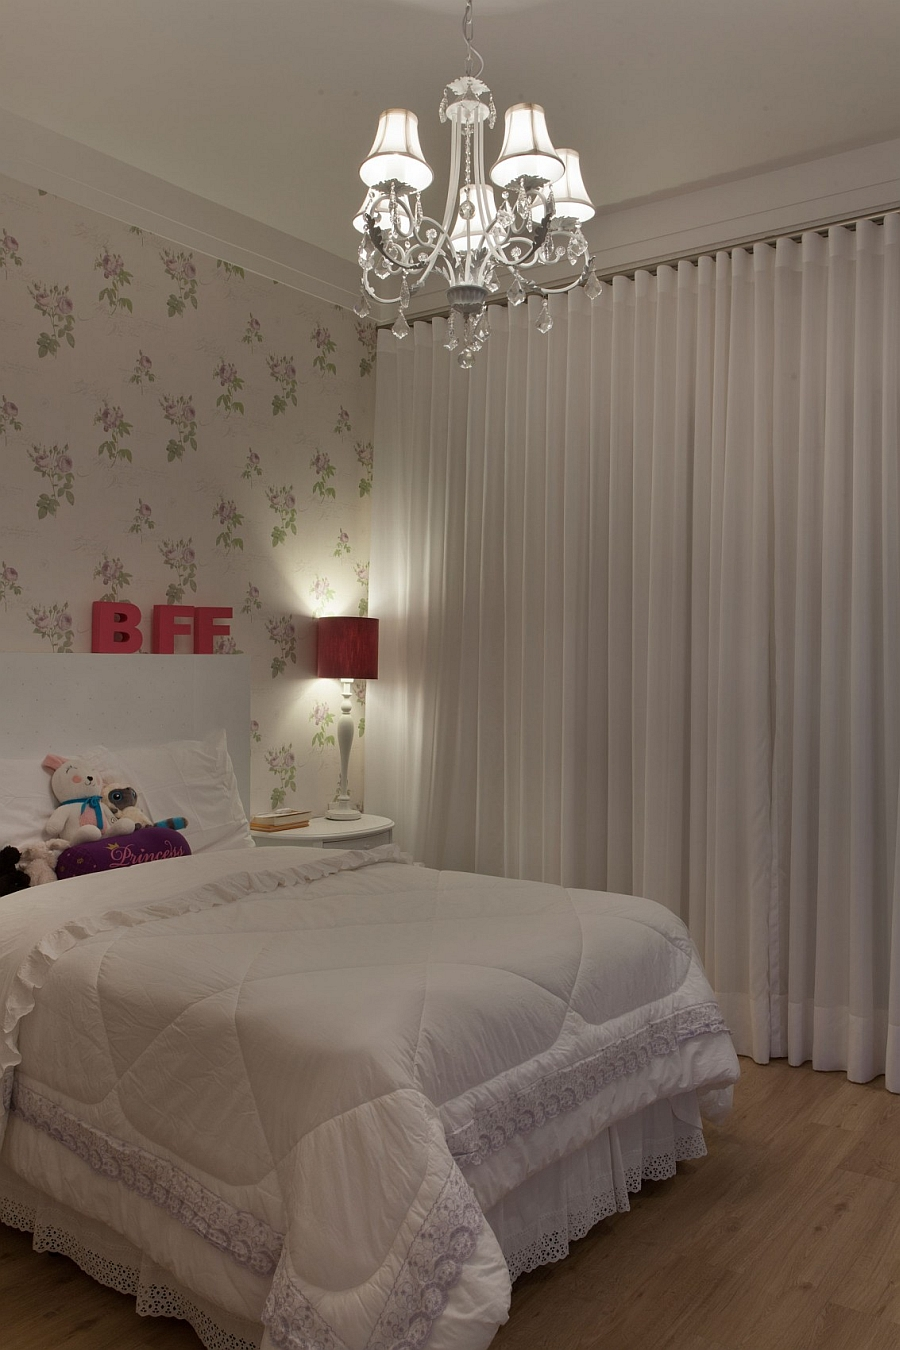 White drapes give the bedroom a soft appeal